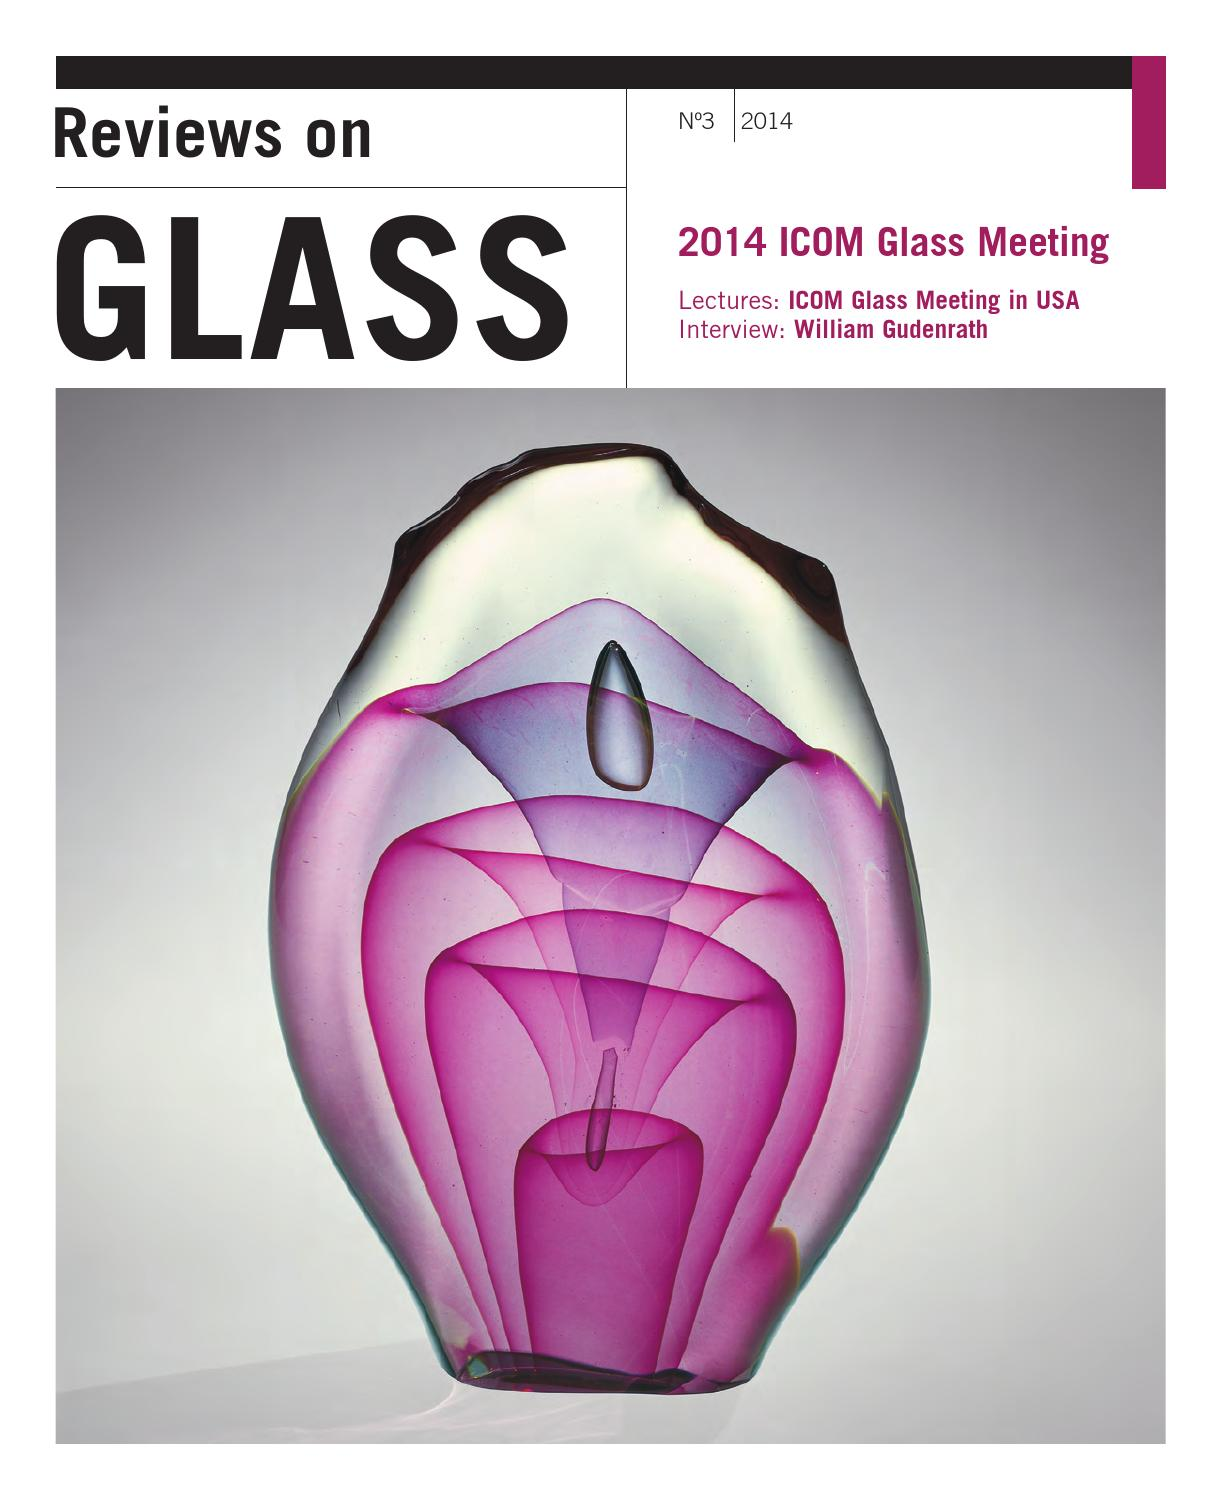 decorative windows for bathrooms pittsburgh corning glass.htm reviews on glass n   3 by icom glass icom glass issuu  glass icom glass